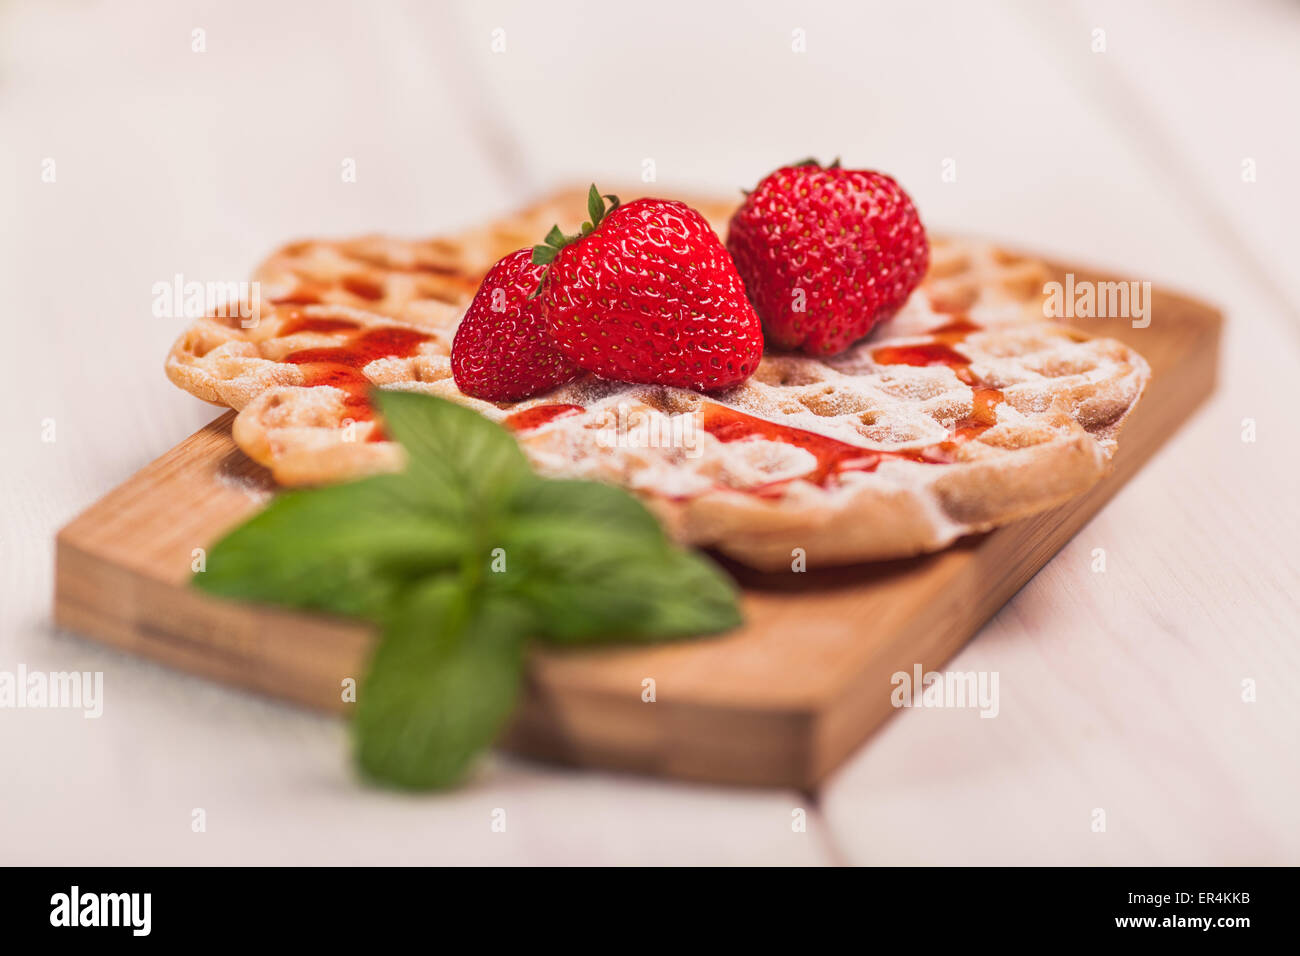 Waffles with strawberry on wooden plank. Debica, Poland - Stock Image